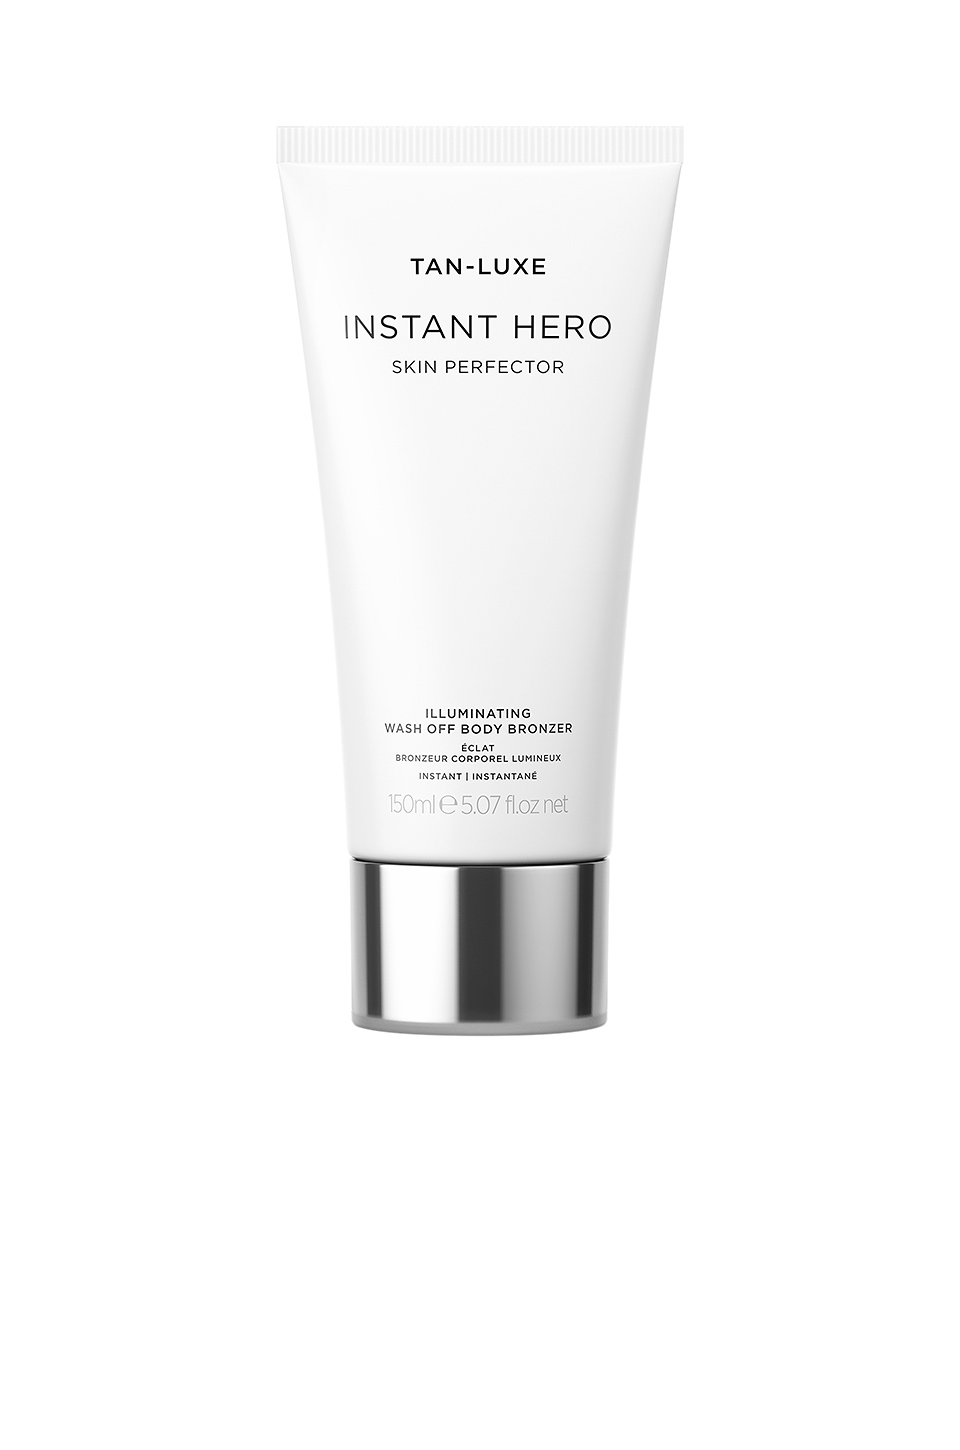 Tan-luxe Instant Hero Illuminating Skin Perfector In N,a